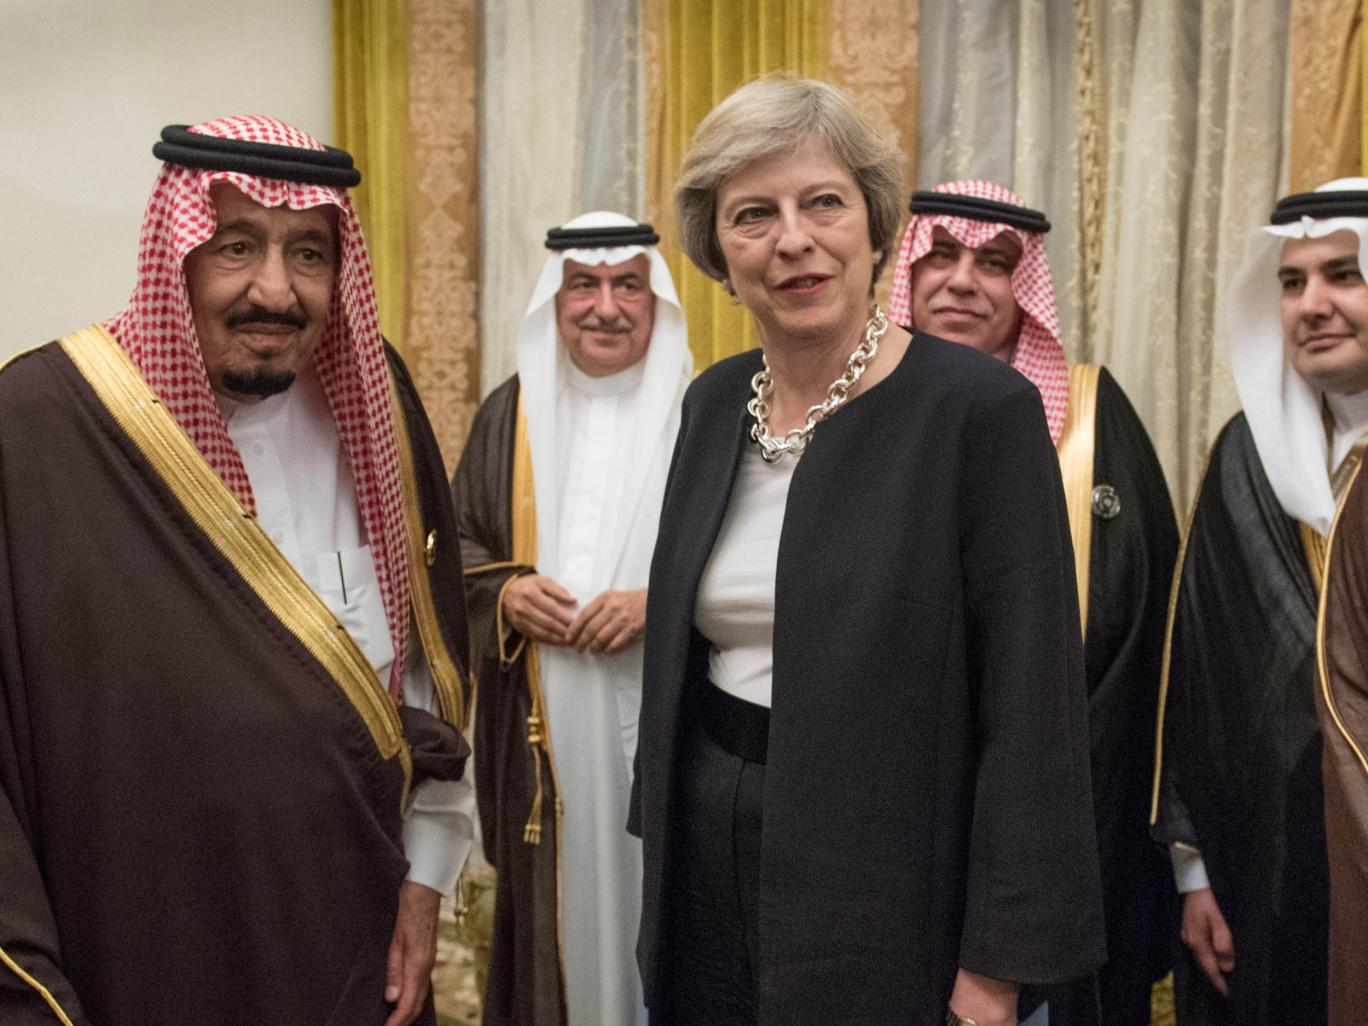 Saudi Arabia has 'clear link' to UK extremism, report says